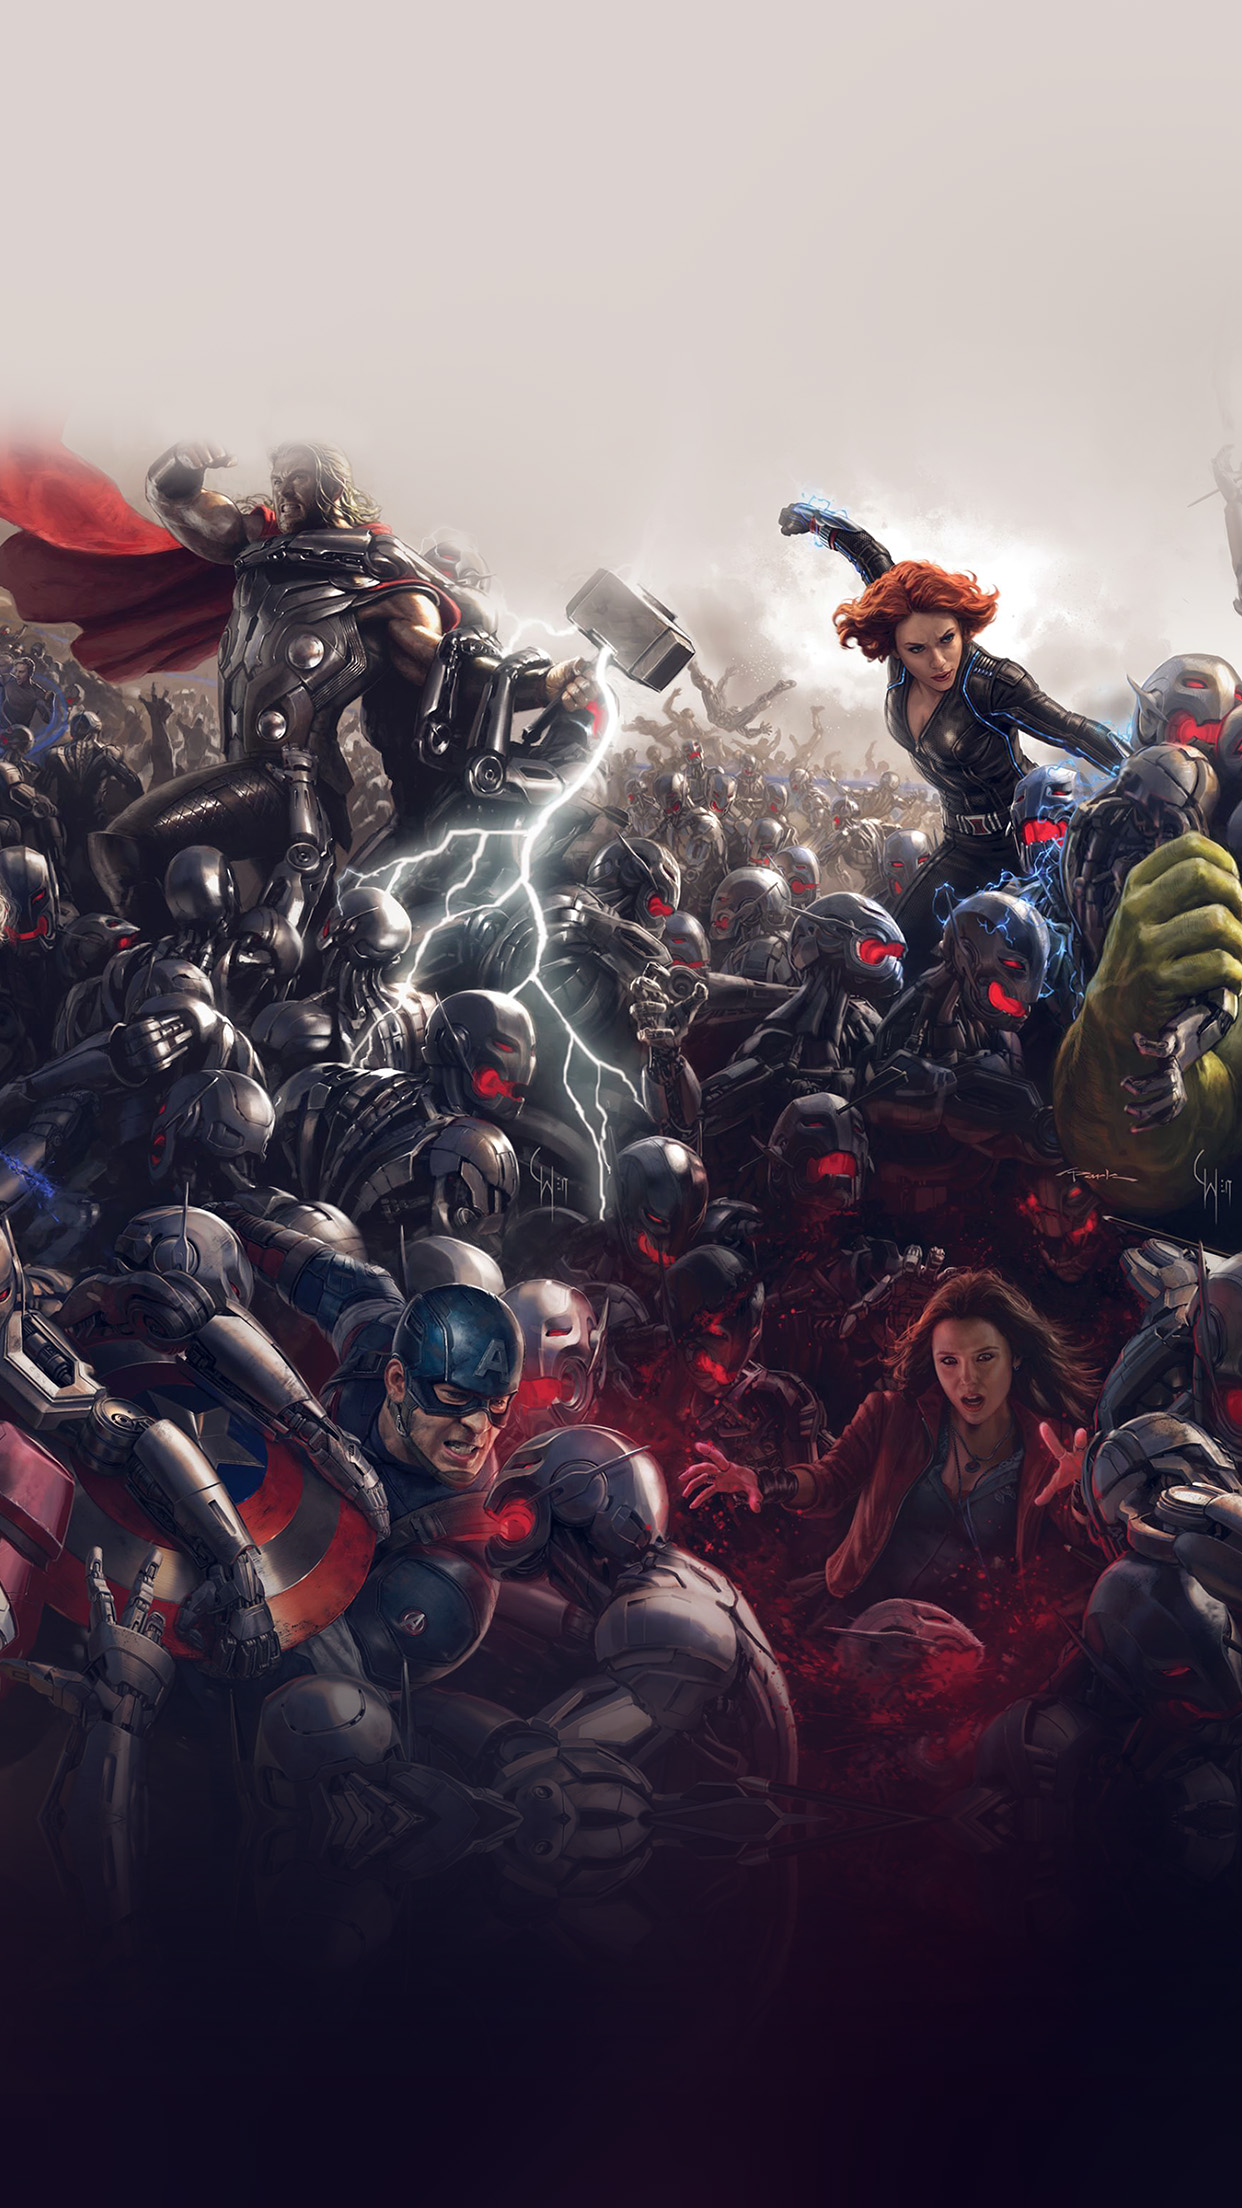 Sick Wallpapers For Iphone 6 Al92 Avengers Marvel Hero Ultron Super Fight Art Papers Co